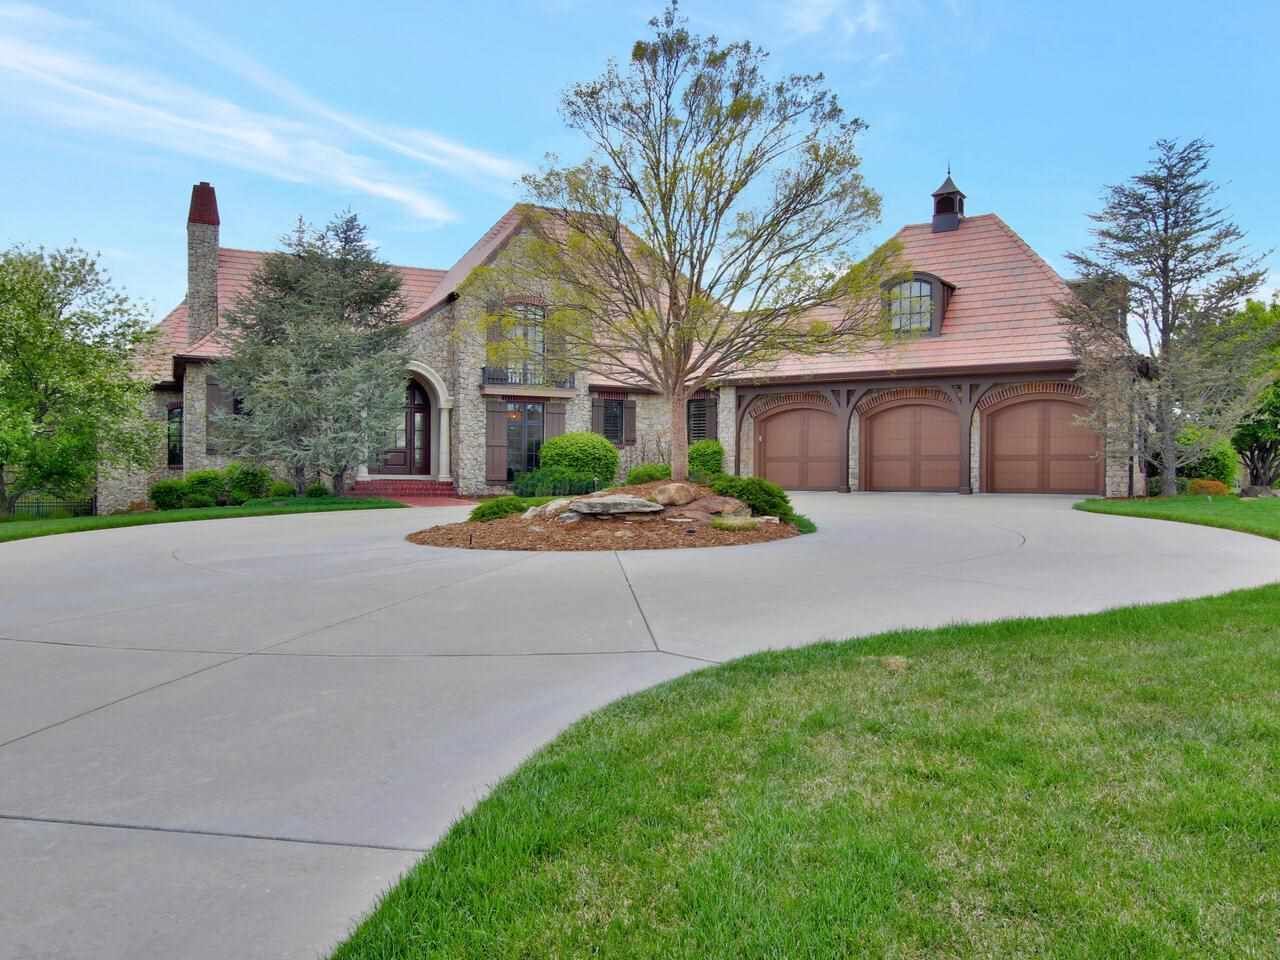 This spectacular French Country style estate home built by Van Buskirk has over 6,200 SF and is located on a beautifully landscaped 1.24 acre lot.  The property is part of a cul-de-sac of 12 incredible homes inside the gated and prestigious Flint Hills National development.  An exceptional level of architectural detail can be found both inside and out, beginning with the full stone exterior, the bronze metal work over the dormers and near the stone fireplace, the Bellaforte-Sonora DaVinci roof and the front entry which features brick steps and cast stone columns.  As you enter the foyer, your attention will immediately be drawn to the spacious Great Room and dining area that features hand hewn cedar beams, incredible Chestnut hardwood floors, a cast stone fireplace and exceptional views of the wooded, private and fenced backyard.  The Chestnut hardwood floors extend to a stunning octagon shaped library/office with built-in bookshelves, wood beams and stone walls as well as into the gourmet kitchen that features knotty alder cabinets, Thermador double ovens and gas cooktop, custom copper vent hood, Sub-Zero refrigerator, granite countertops, pantry and a breakfast area with built-in banquette. The master suite features both exceptional luxury and convenience.  The 23x17 master bedroom includes a sitting area with incredible views of the backyard.  The master bath is light and bright with tile floors, a large soaker tub and separate granite shower and it leads to a fantastic 14.5 x 13 dressing room and closet with exceptional storage.  The Dressing Room leads to an oversized laundry area with an abundance of alder cabinets, additional pantry space, a second refrigerator and a wine cooler.  Impressive windows overlook the open staircase that leads to the lower level that features a large family room with wet bar, 3 nice sized bedrooms, 2 additional baths and an exercise room.  A spectacular outdoor living area can be accessed through French Doors in the Great Room or f